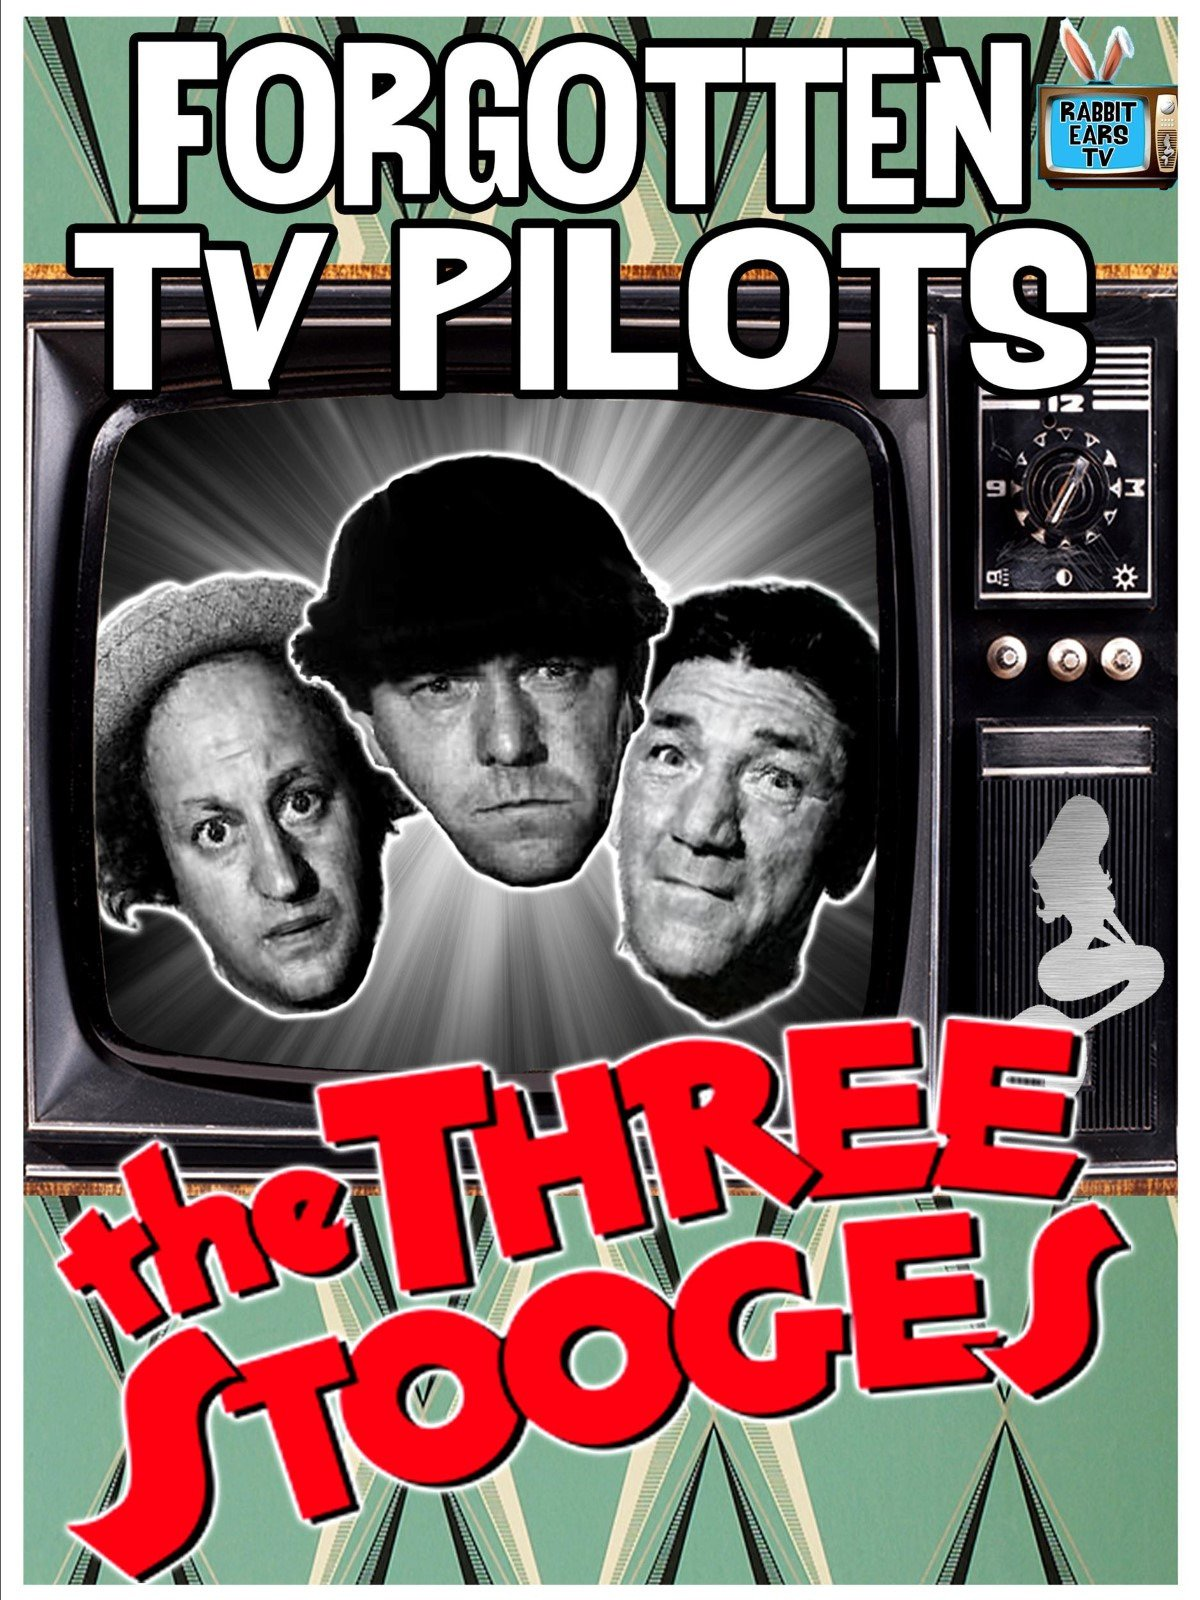 Amazon.com: Forgotten TV Pilots: The Three Stooges: Moses Horwitz ...